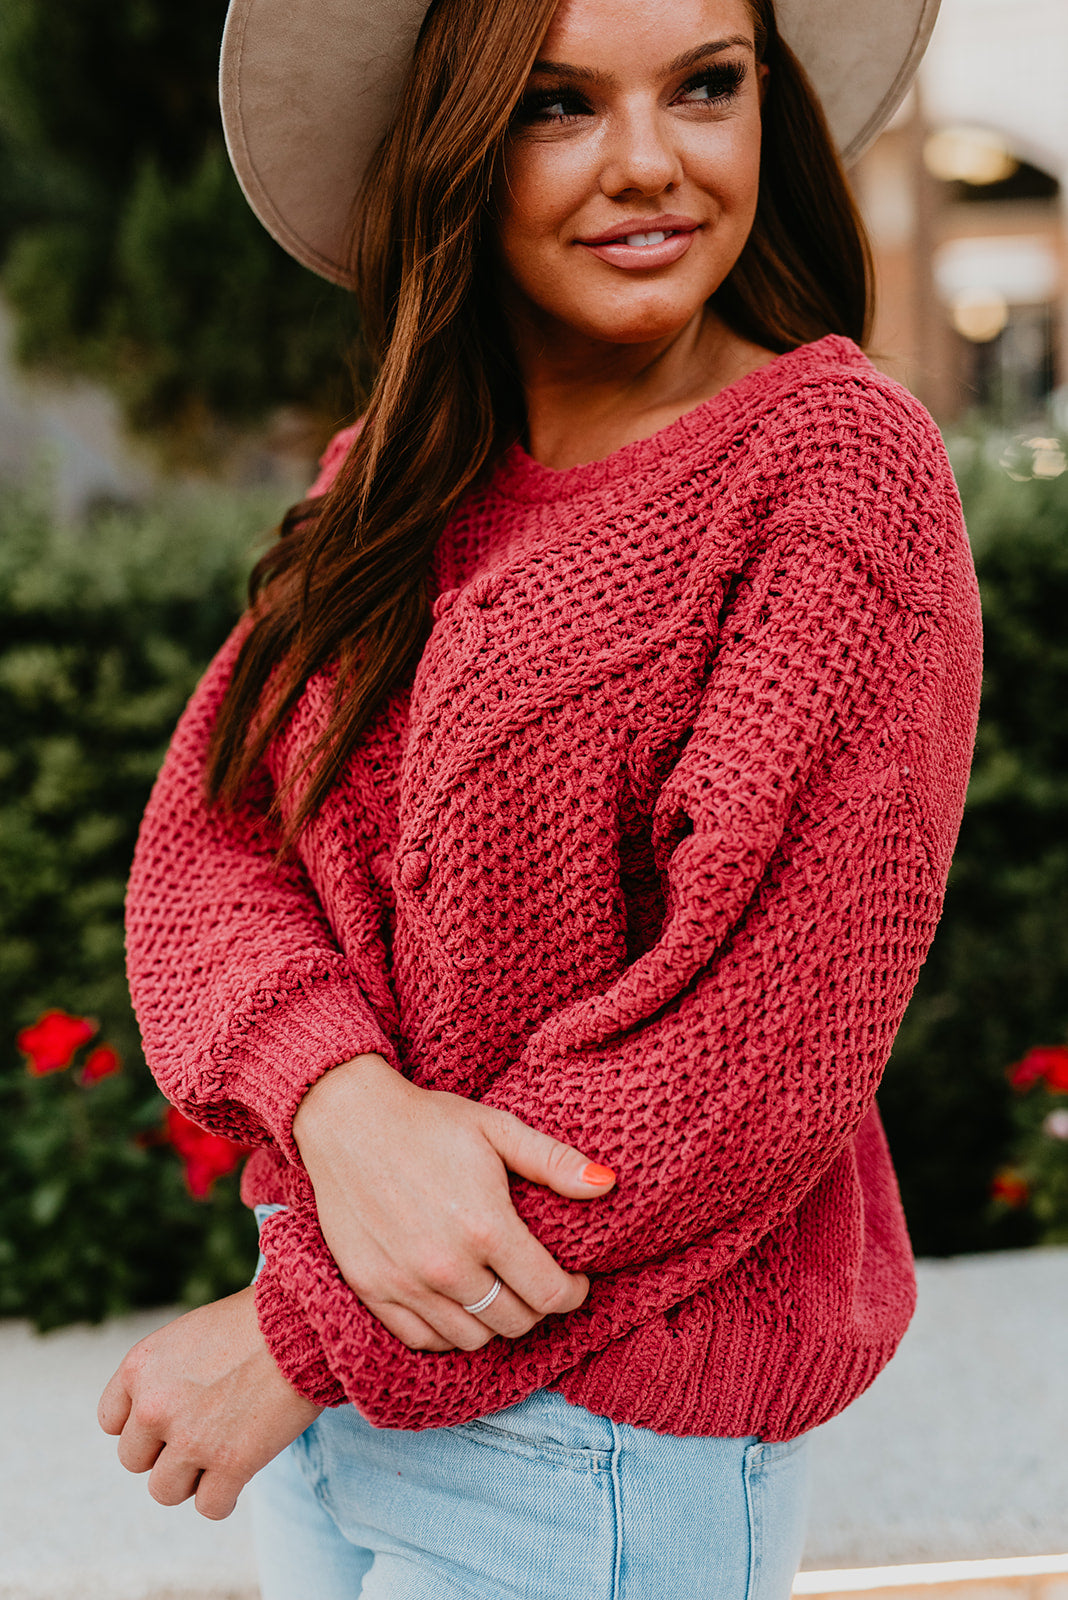 THE PAYTON PULLOVER SWEATER IN VINTAGE ROSE